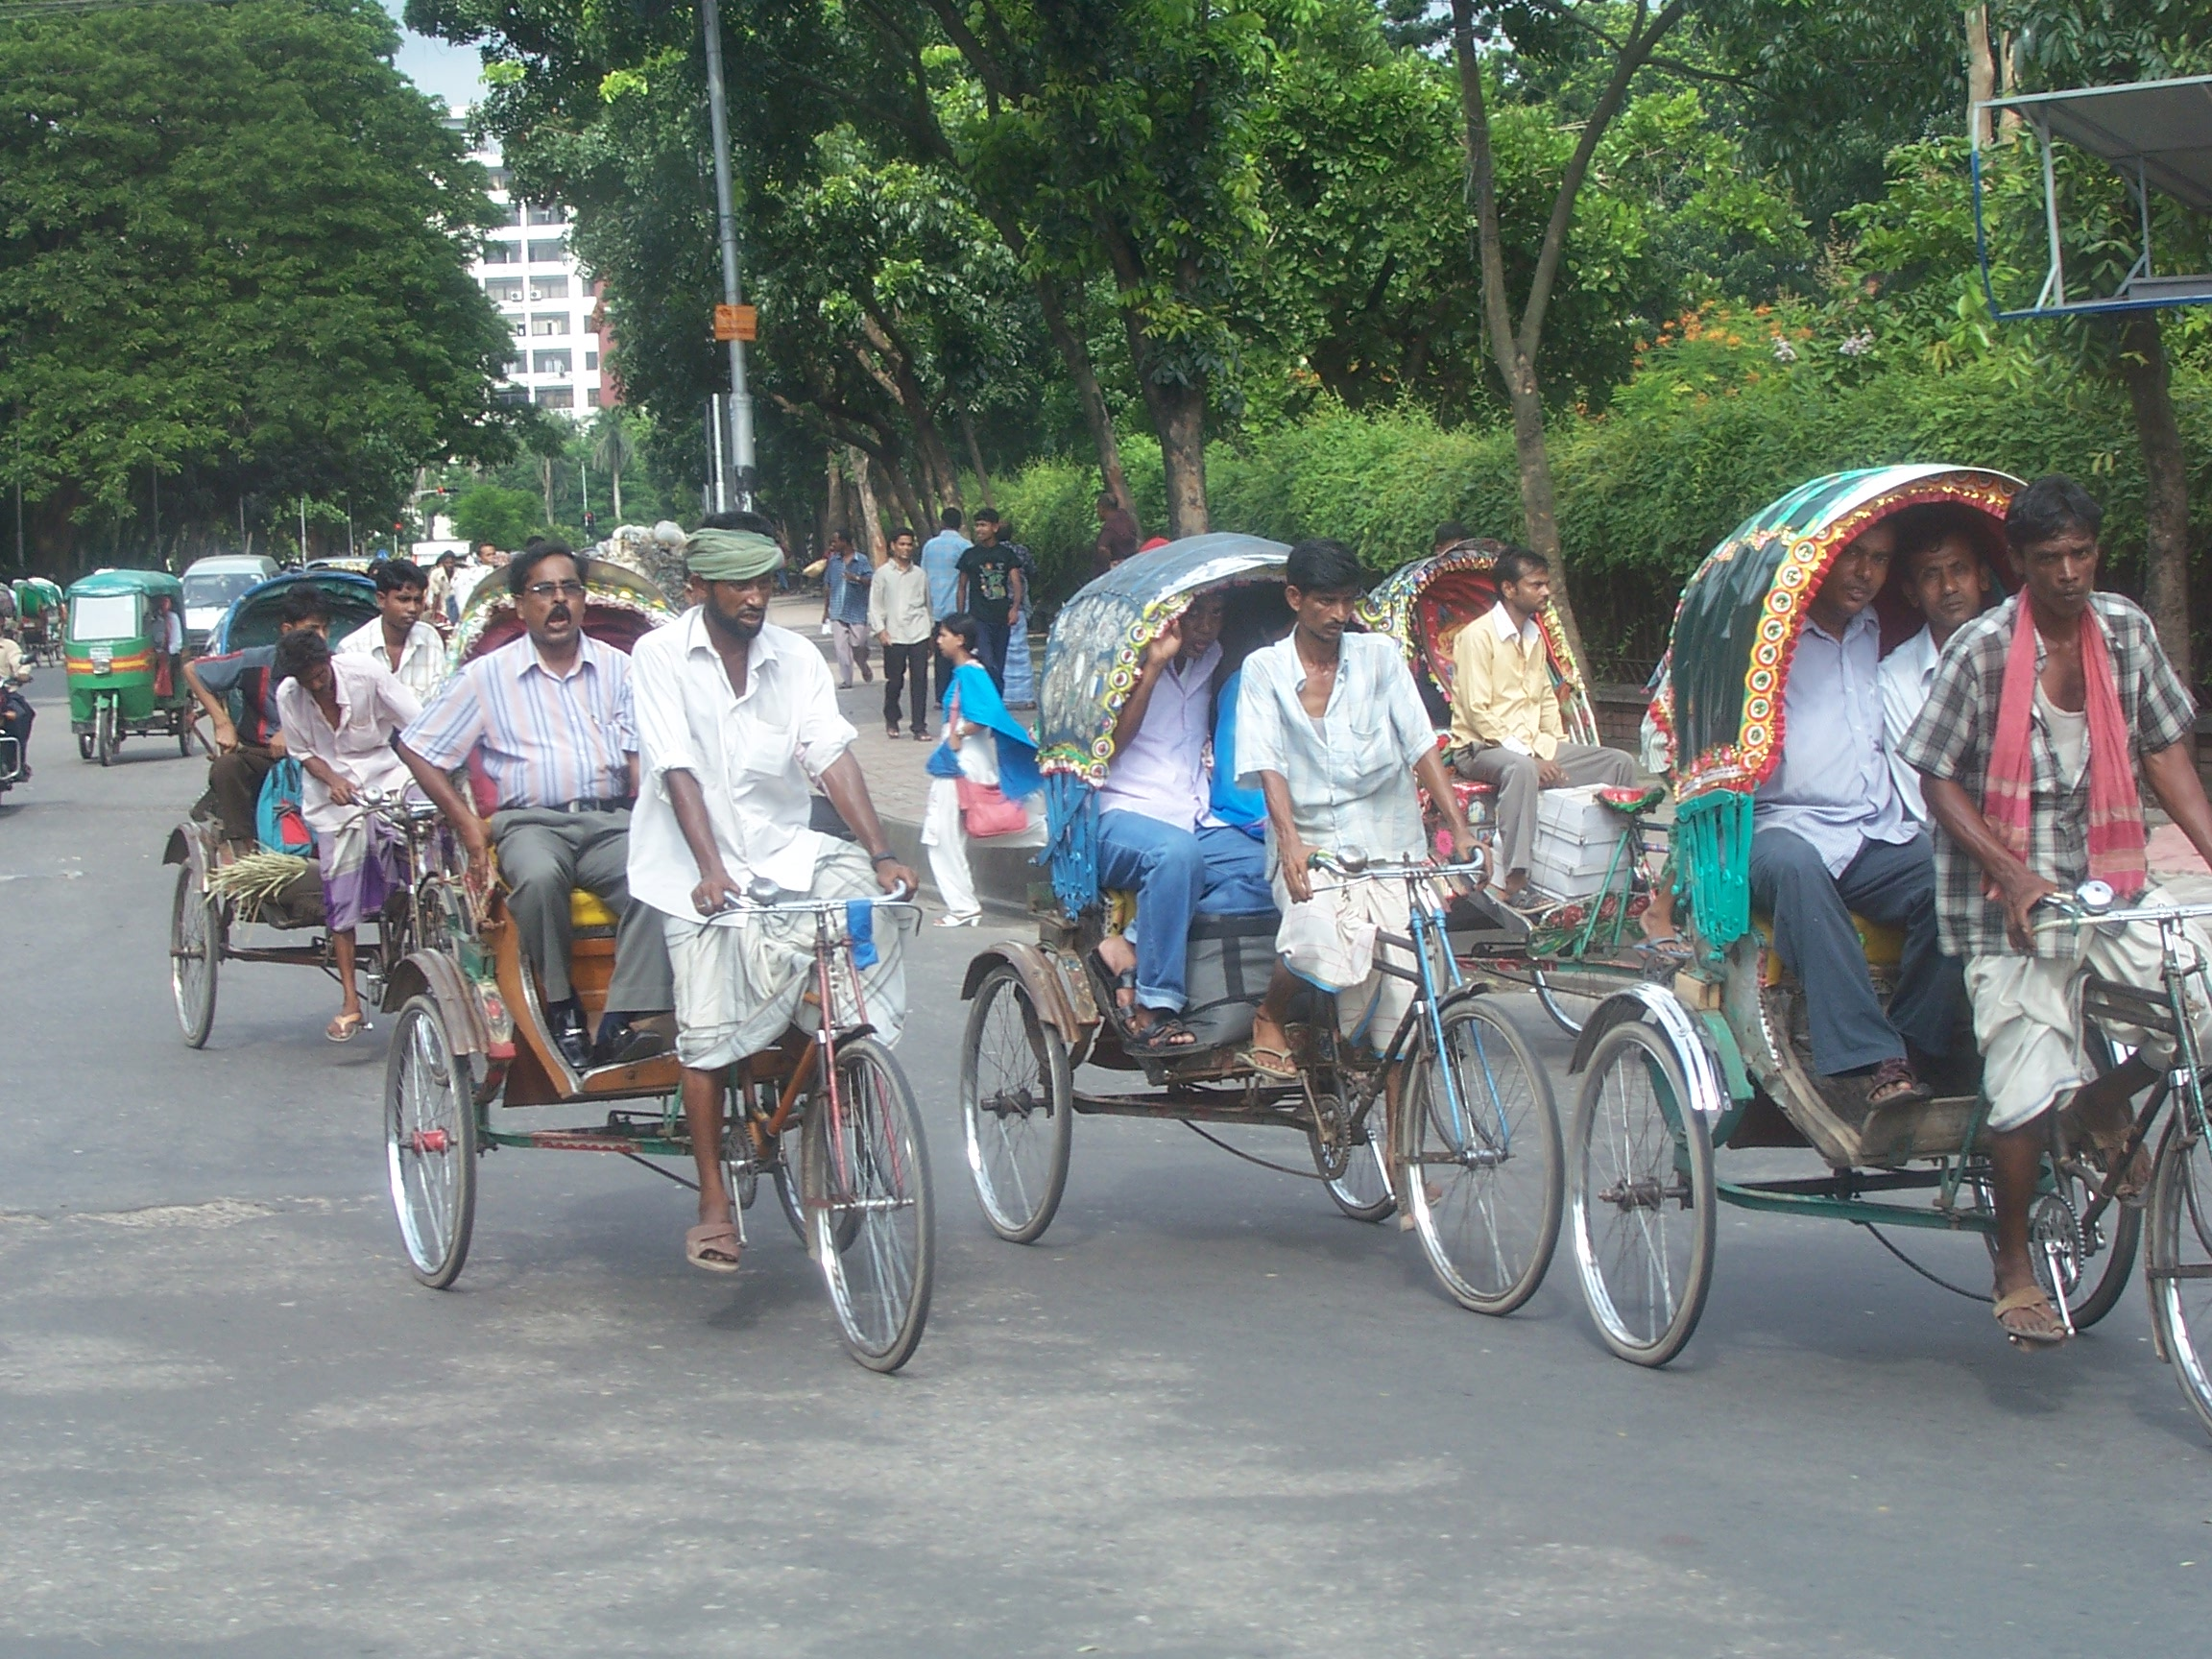 A group of bike carts and riders